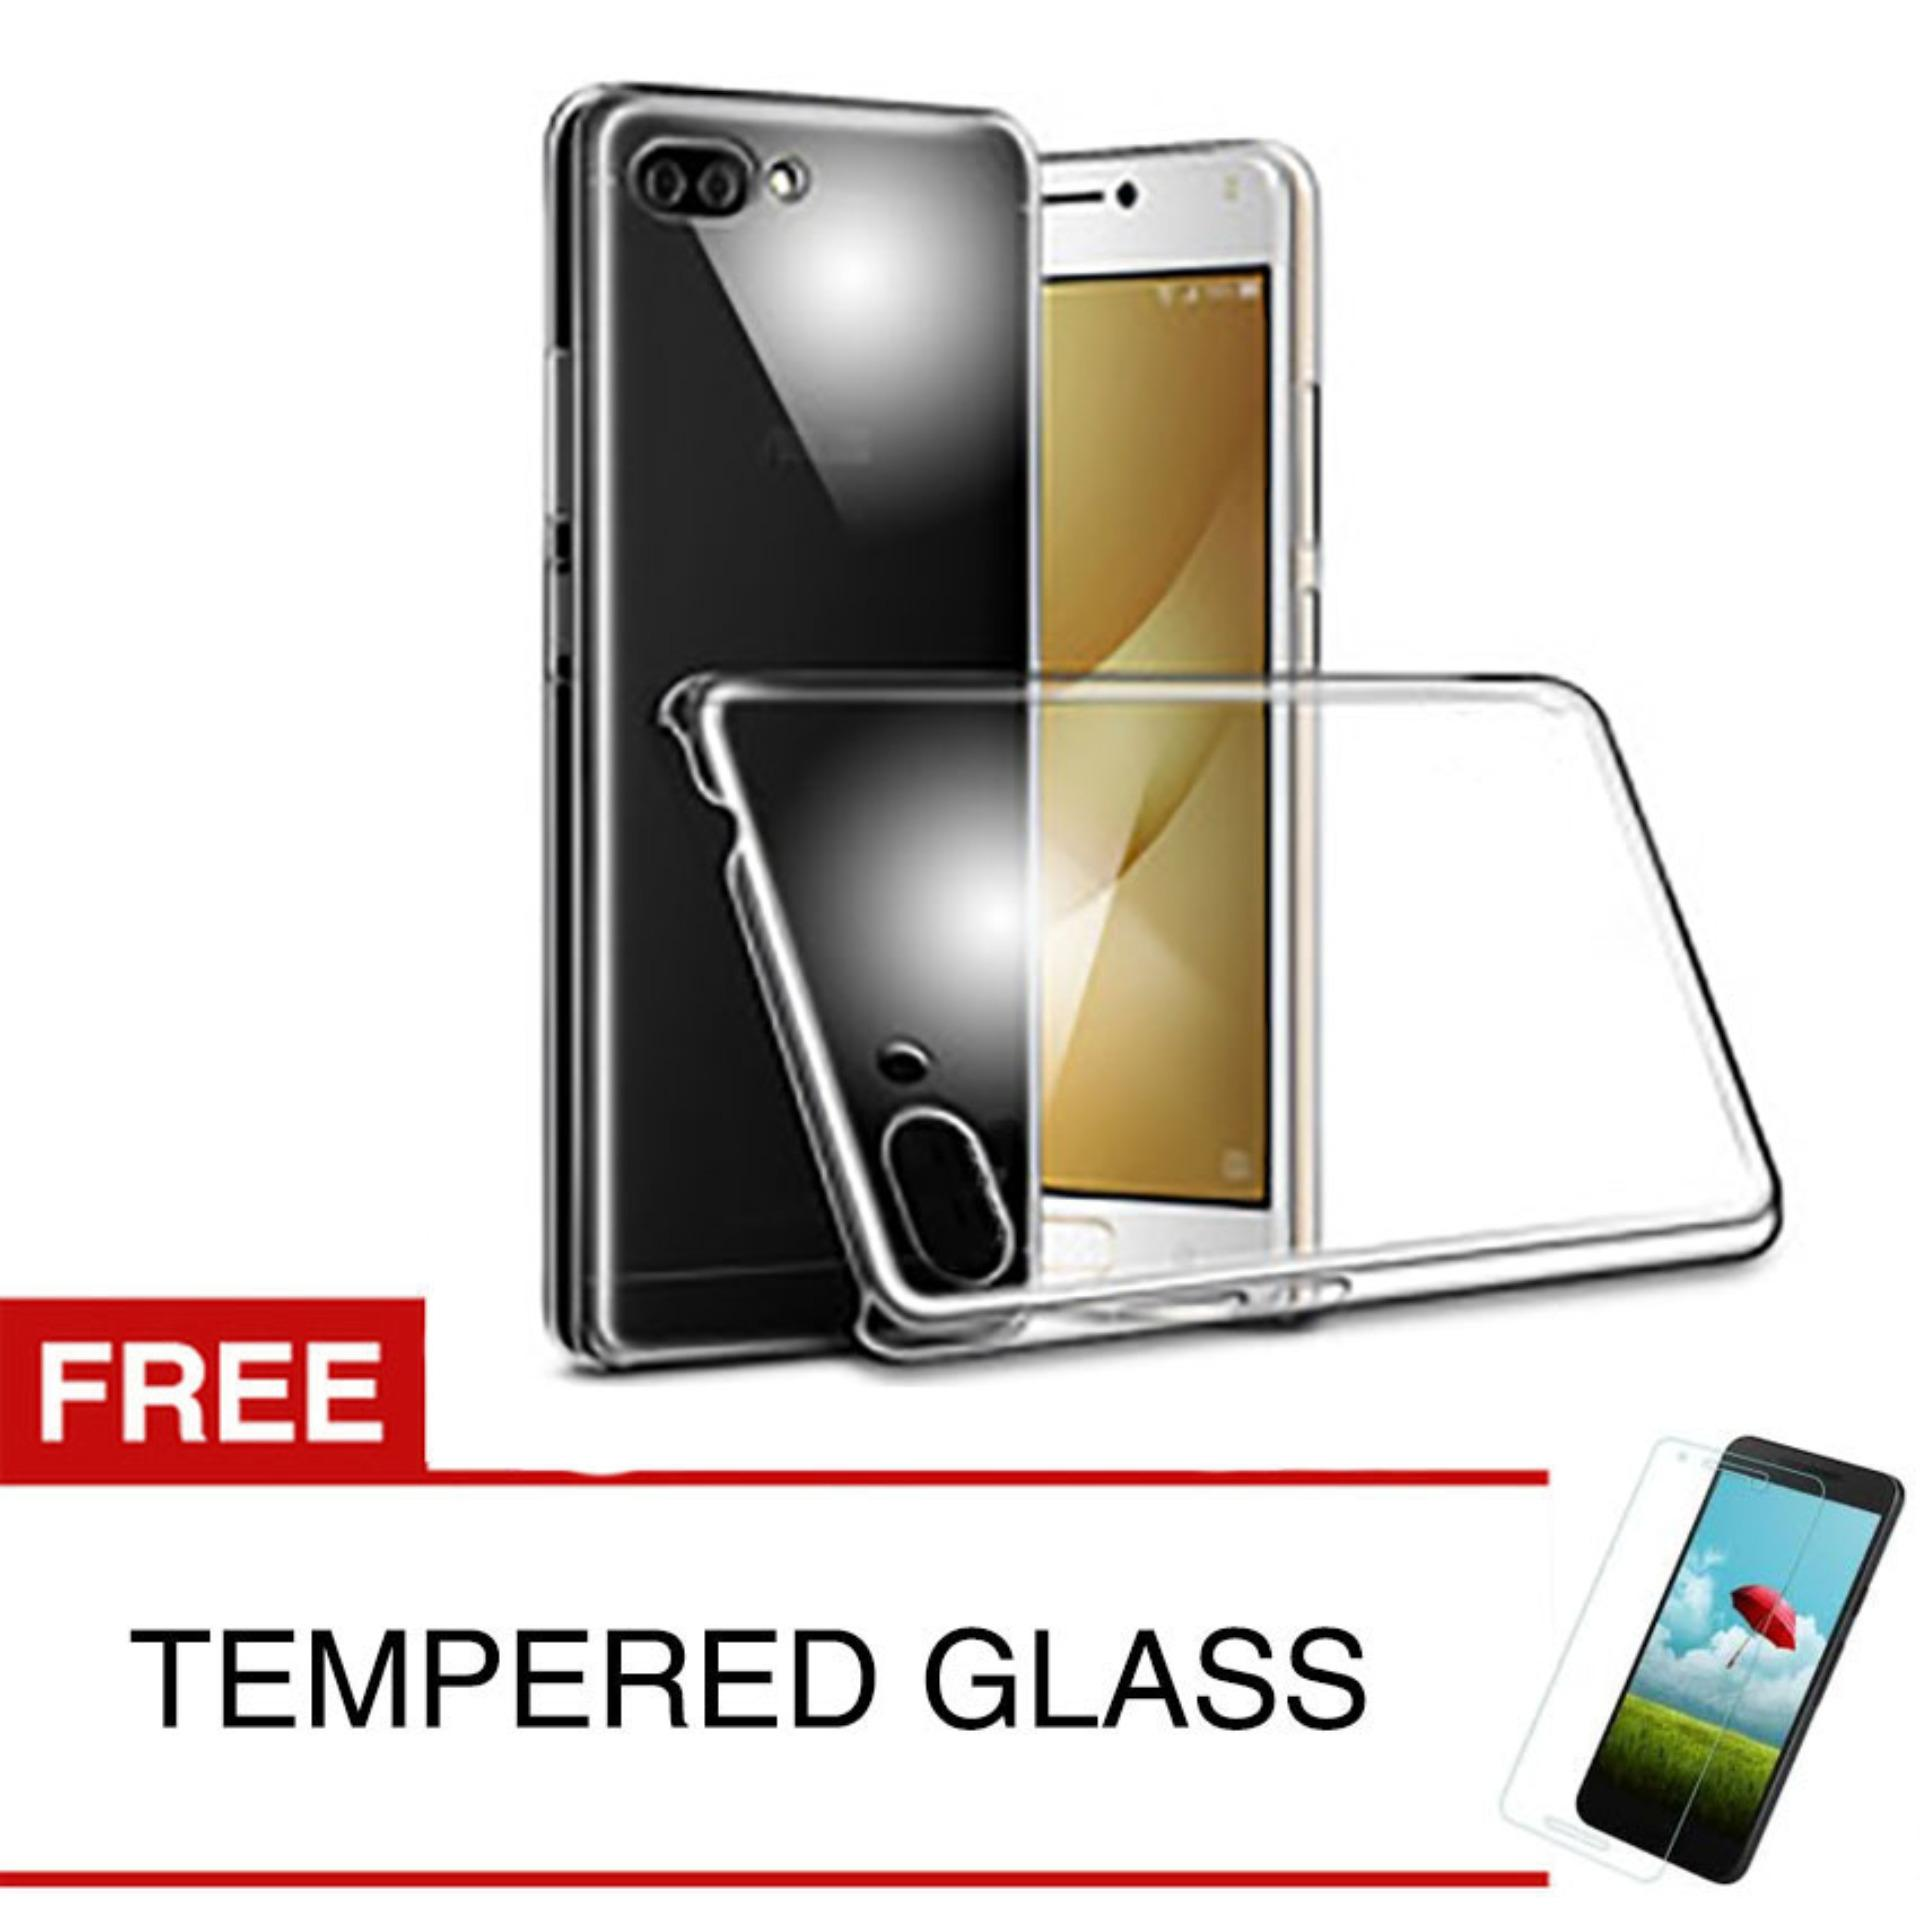 Harga Crystal Case For Asus Zenfone 4 Max Pro Zc554Kl Clear Hardcase Gratis Tempered Glass Paling Murah